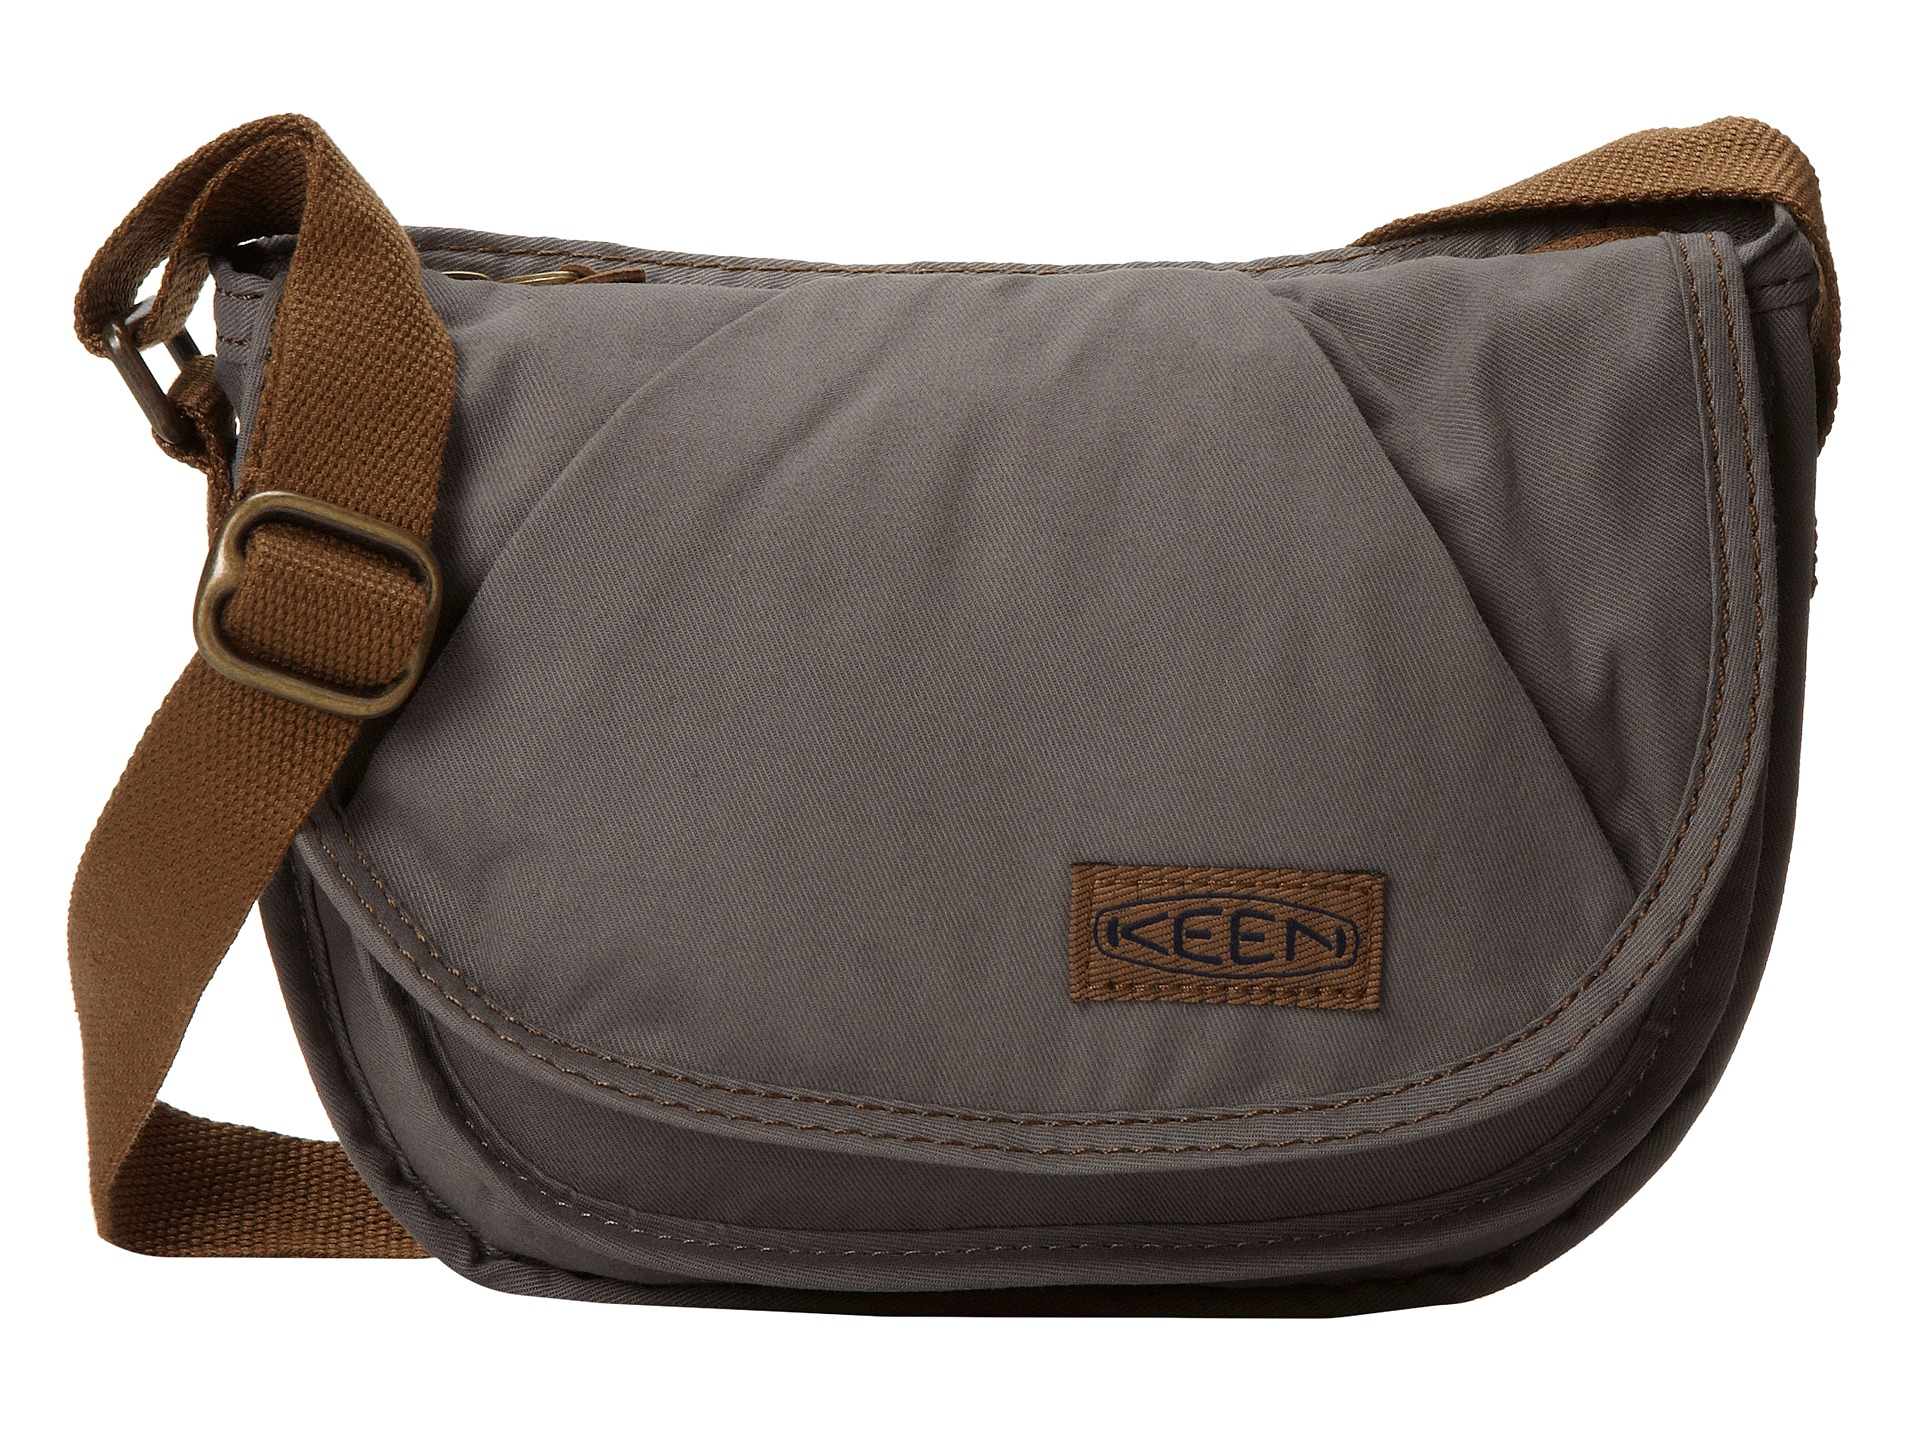 2f22bd8354 Keen Montclair Mini Bag Brushed Twill in Gray - Lyst